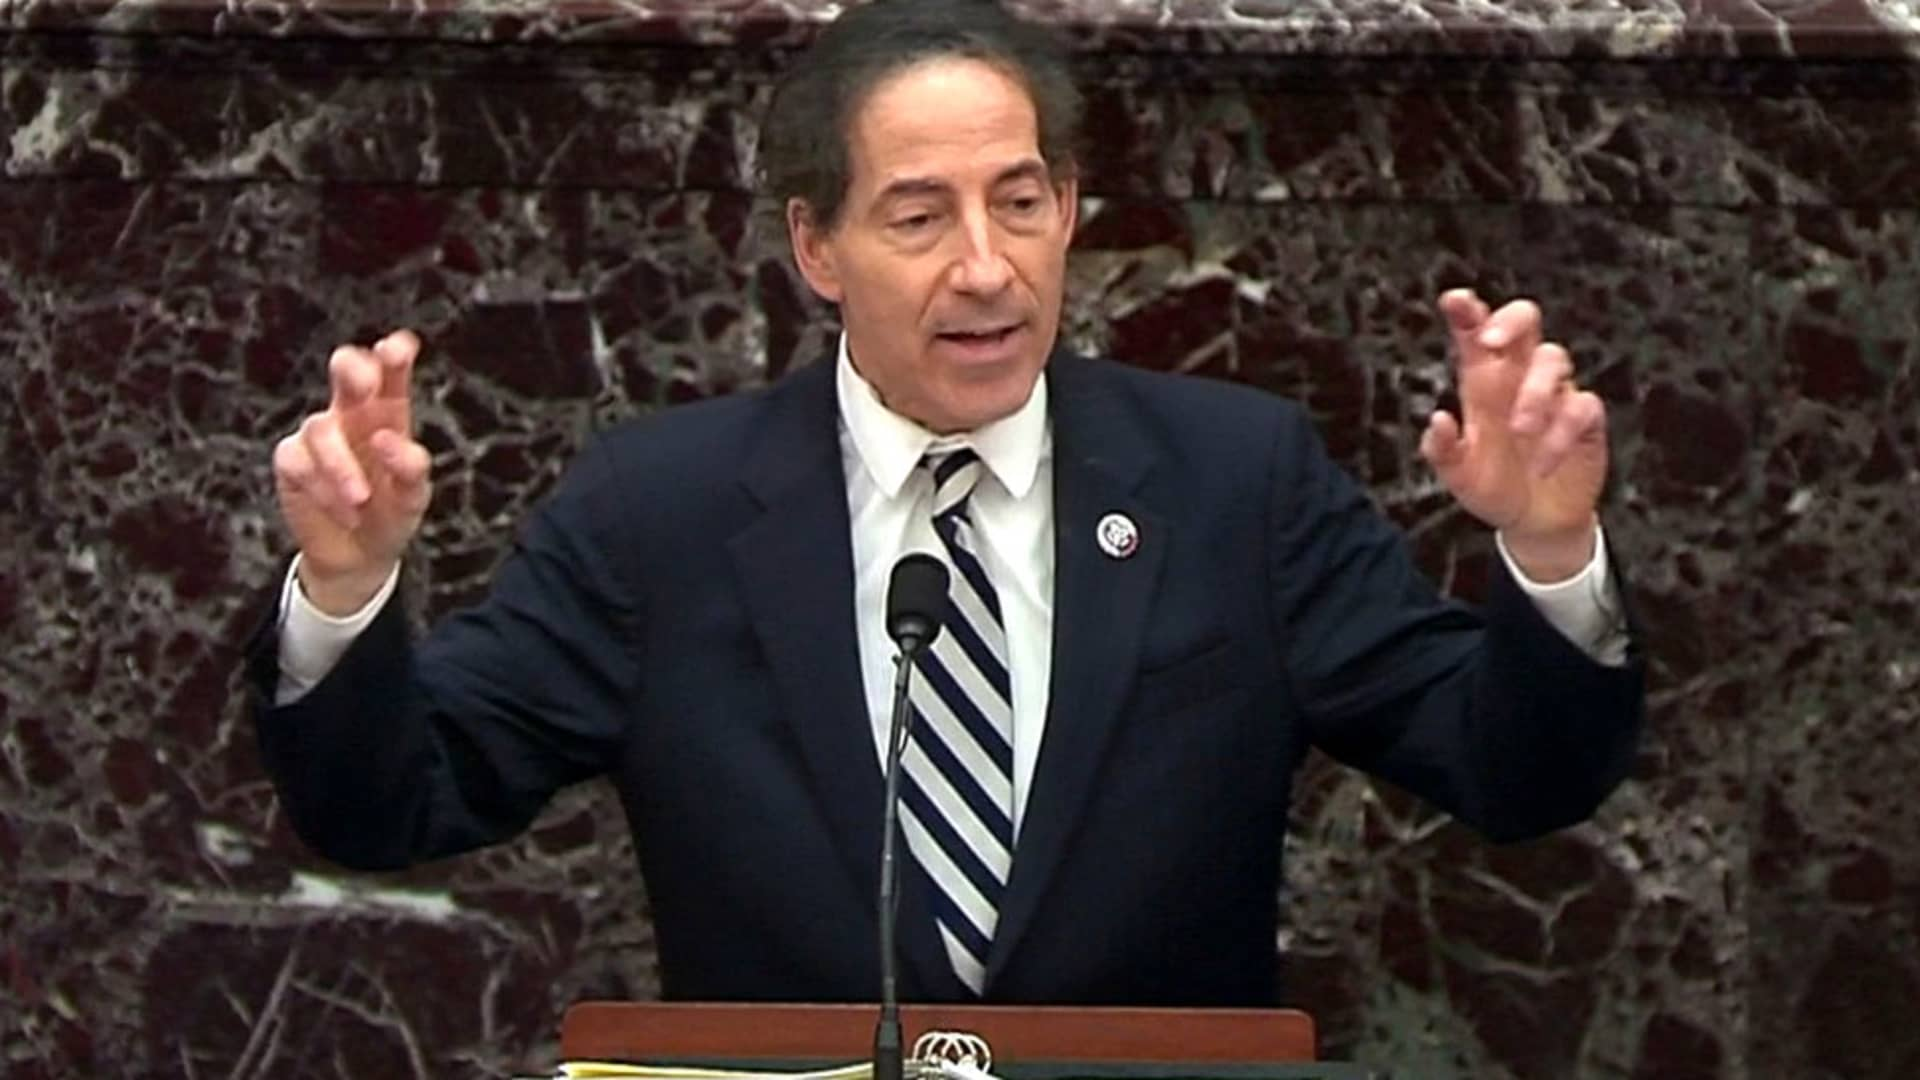 U.S. House lead impeachment manager Rep. Jamie Raskin (D-MD) pleads the impeachment managers' case in the impeachment trial of former U.S. President Donald Trump on charges of inciting the deadly attack on the U.S. Capitol, on the floor of the Senate chamber on Capitol Hill in Washington, February 11, 2021.